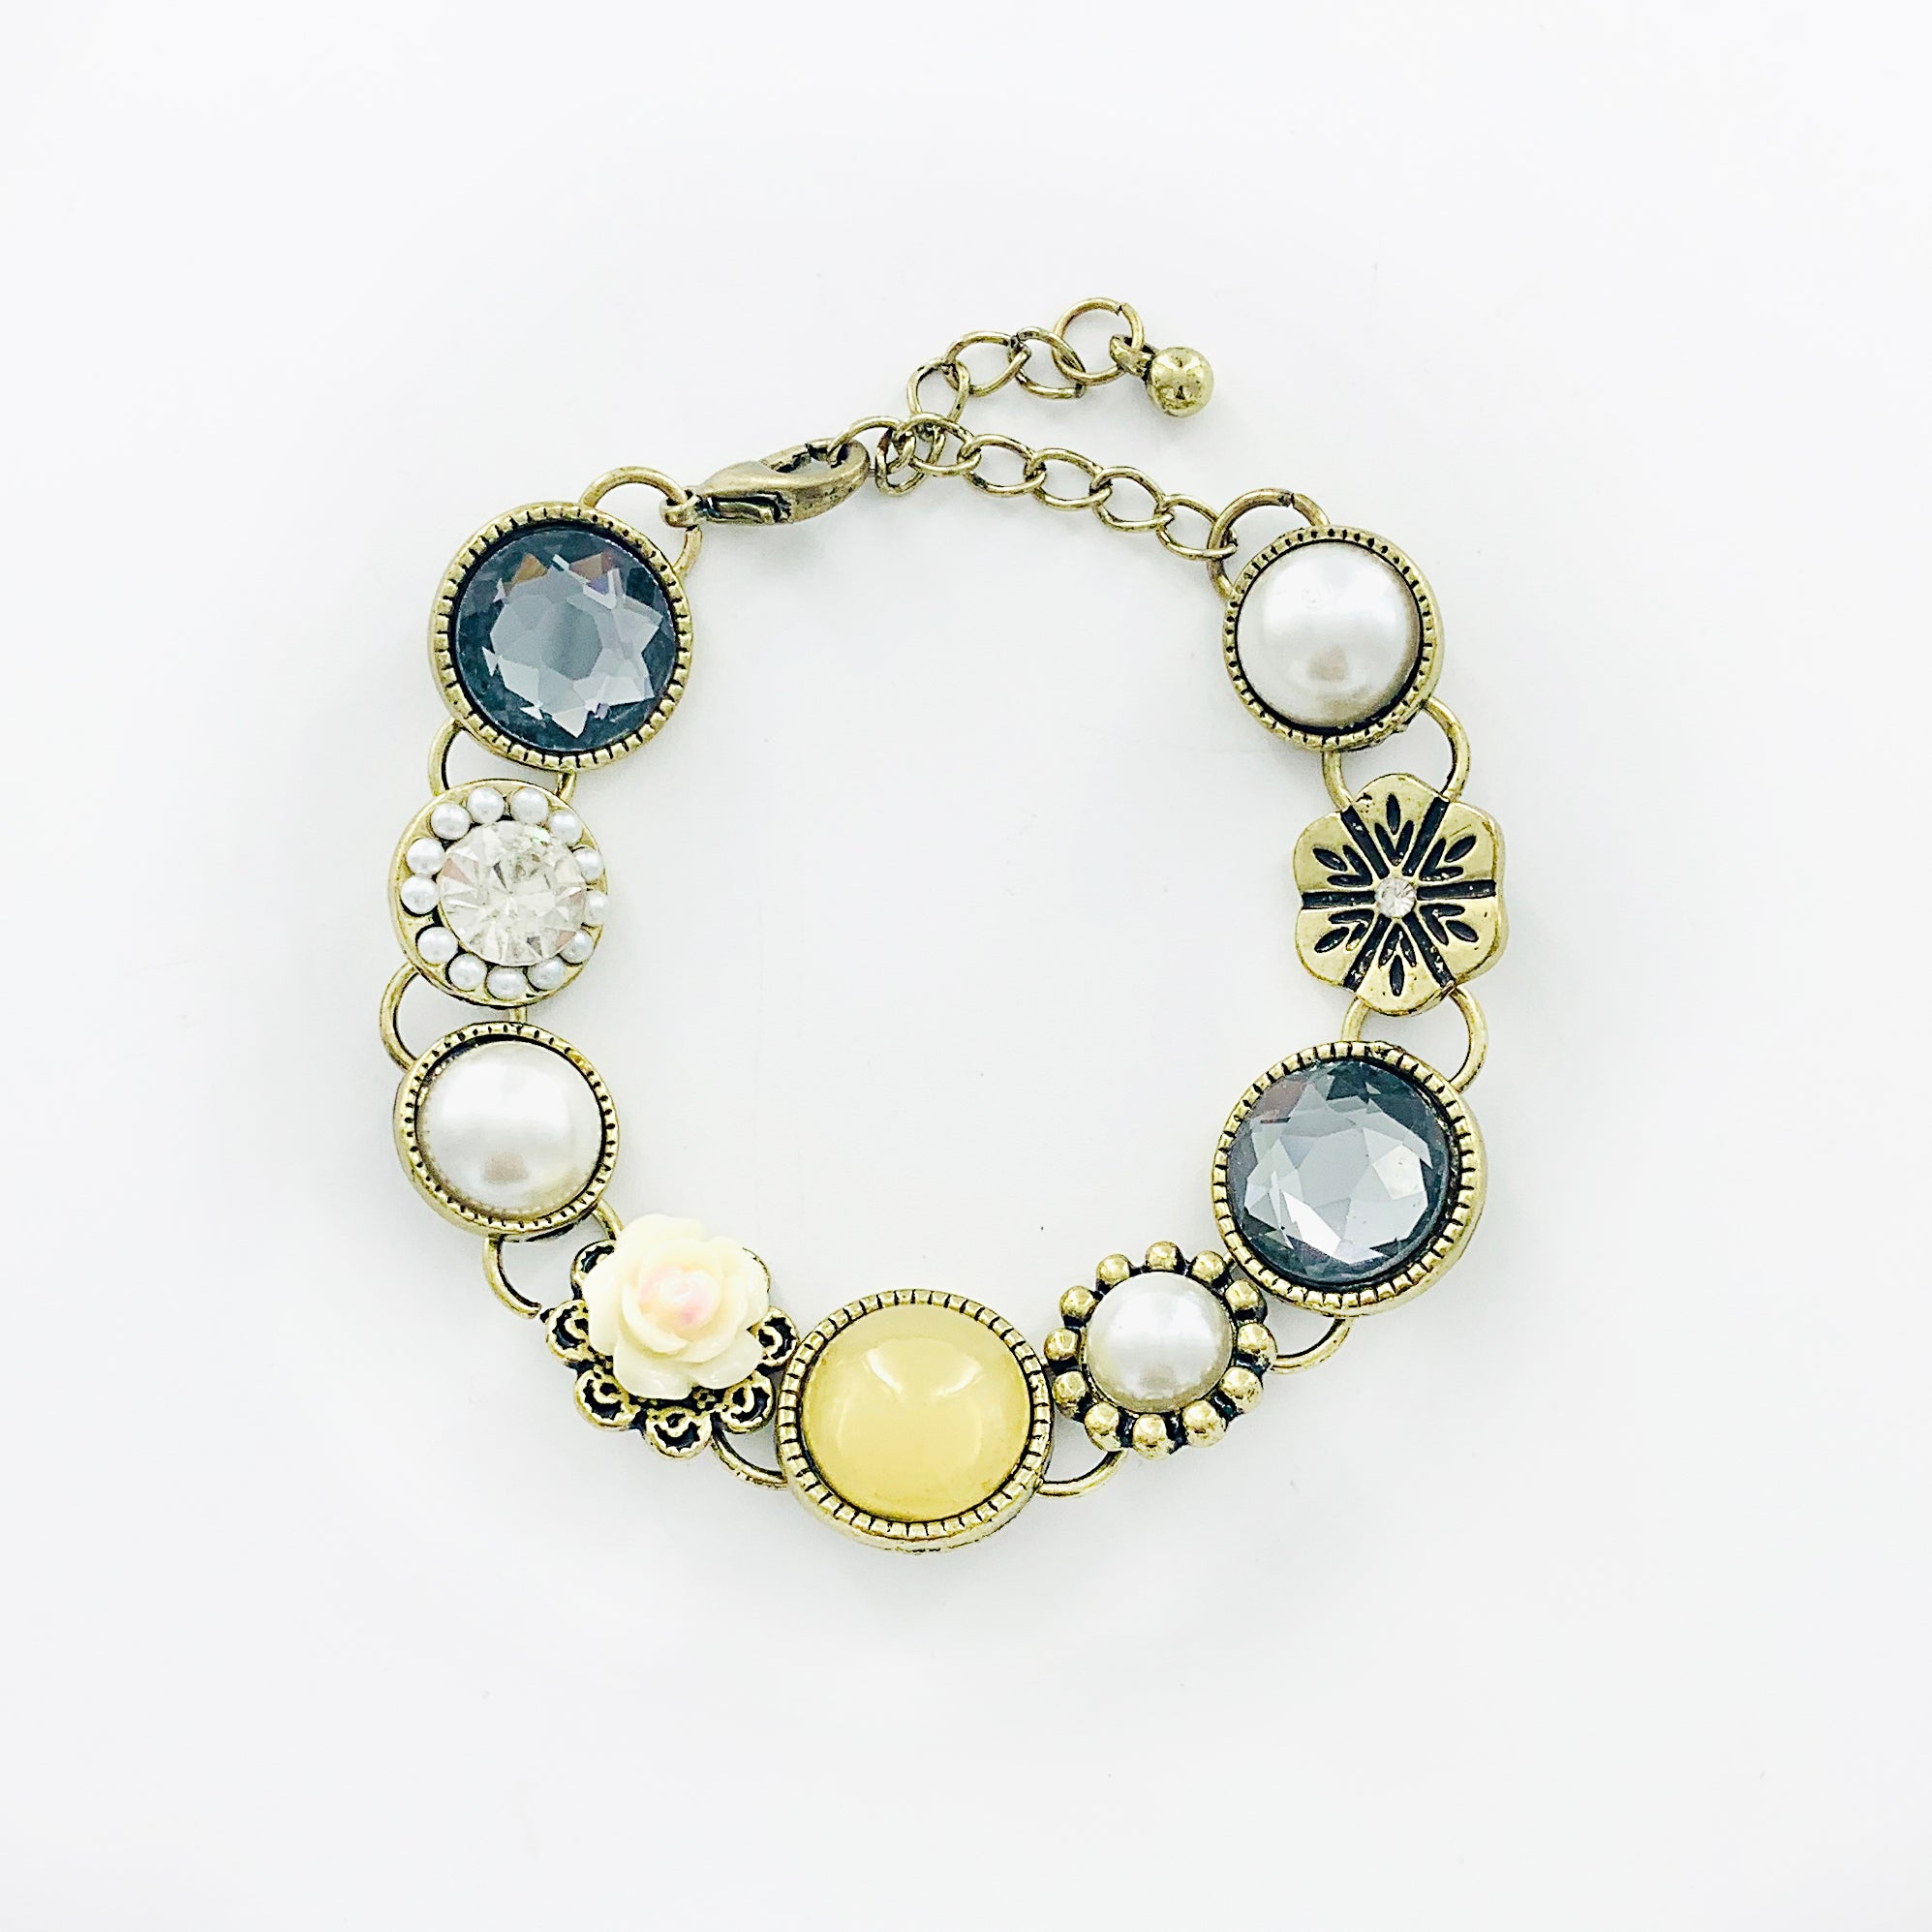 Vintage-styled bracelet with pearls and stones